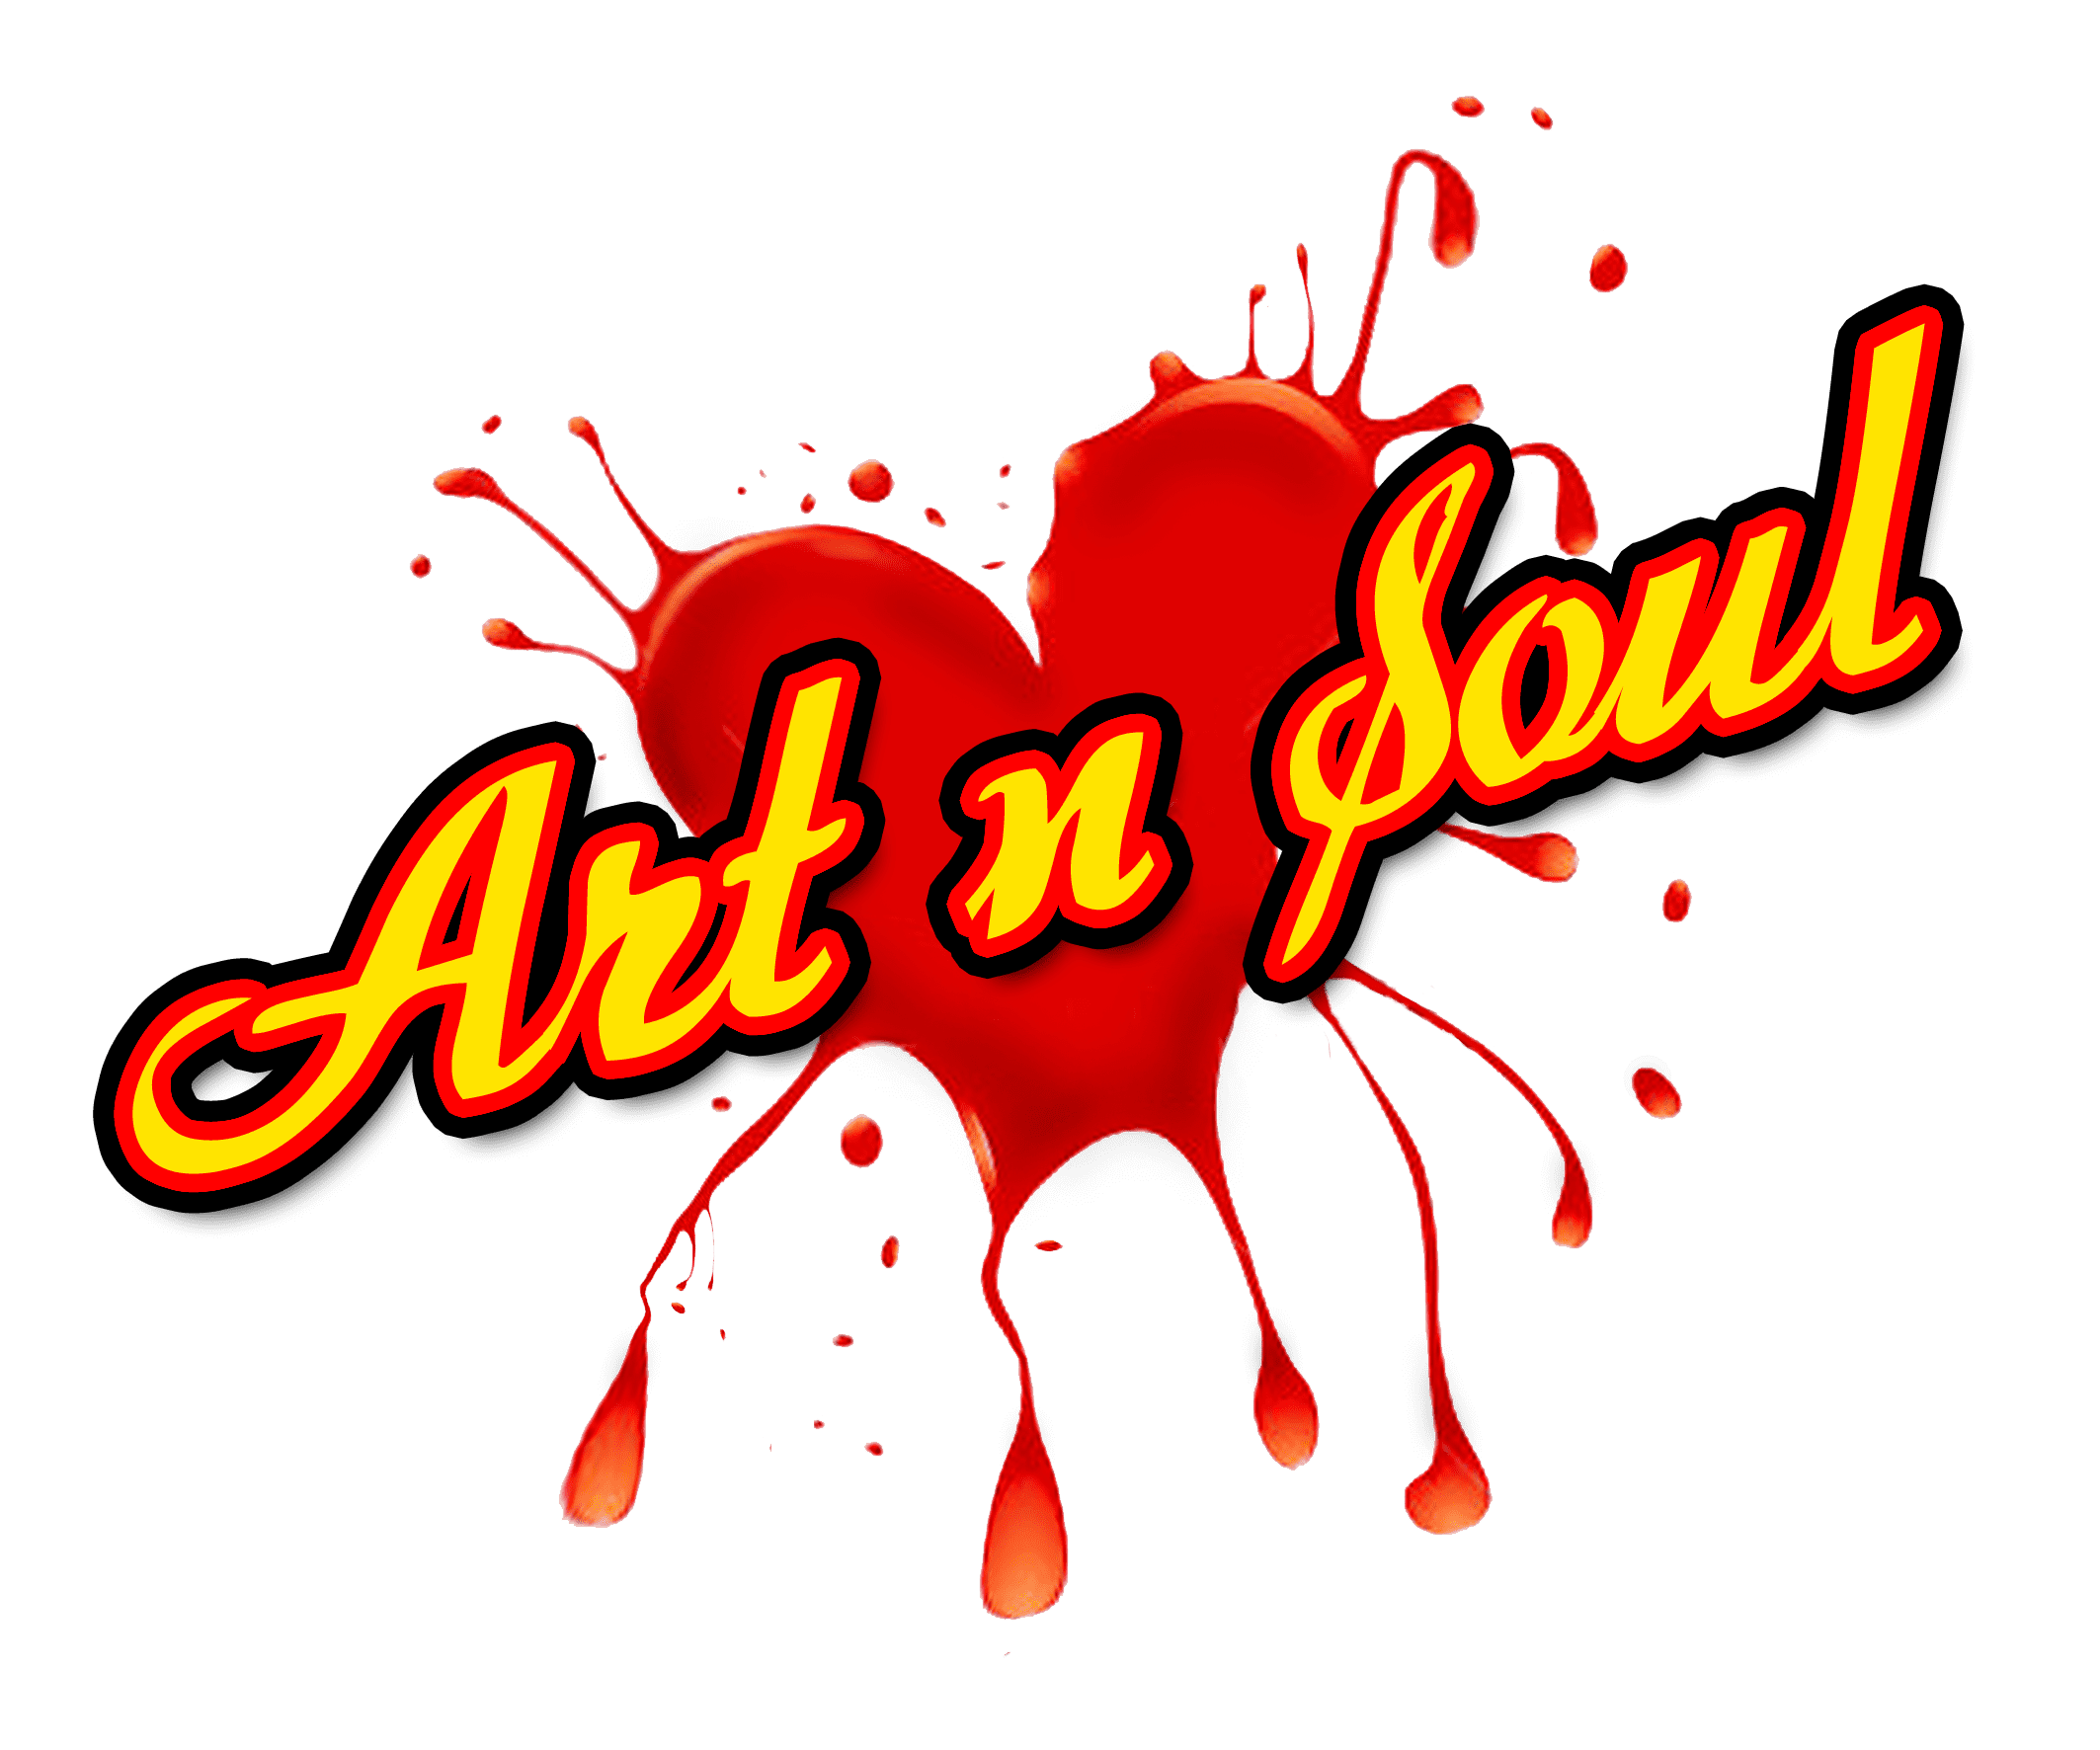 5 reasons to choose Art n Soul for your next tattoo.